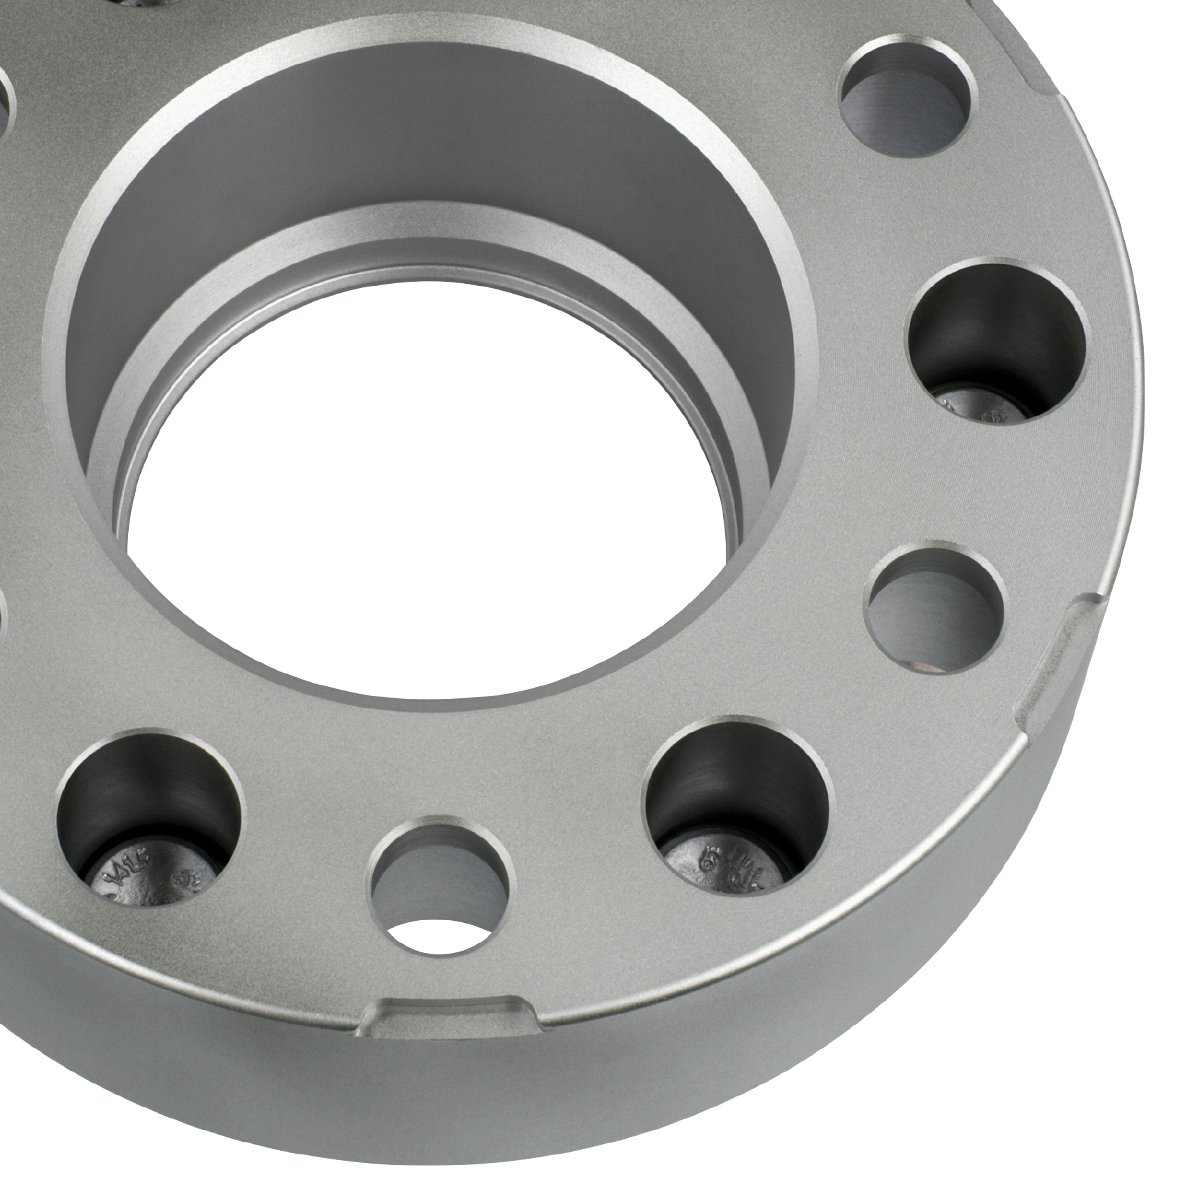 Supreme Suspensions - (4pc) 1986-2016 Toyota 4Runner 2'' Hub Centric Wheel Spacers 6x5.5'' (6x139.7mm) with Lip + M12x1.5 Studs [Silver] by Supreme Suspensions (Image #4)